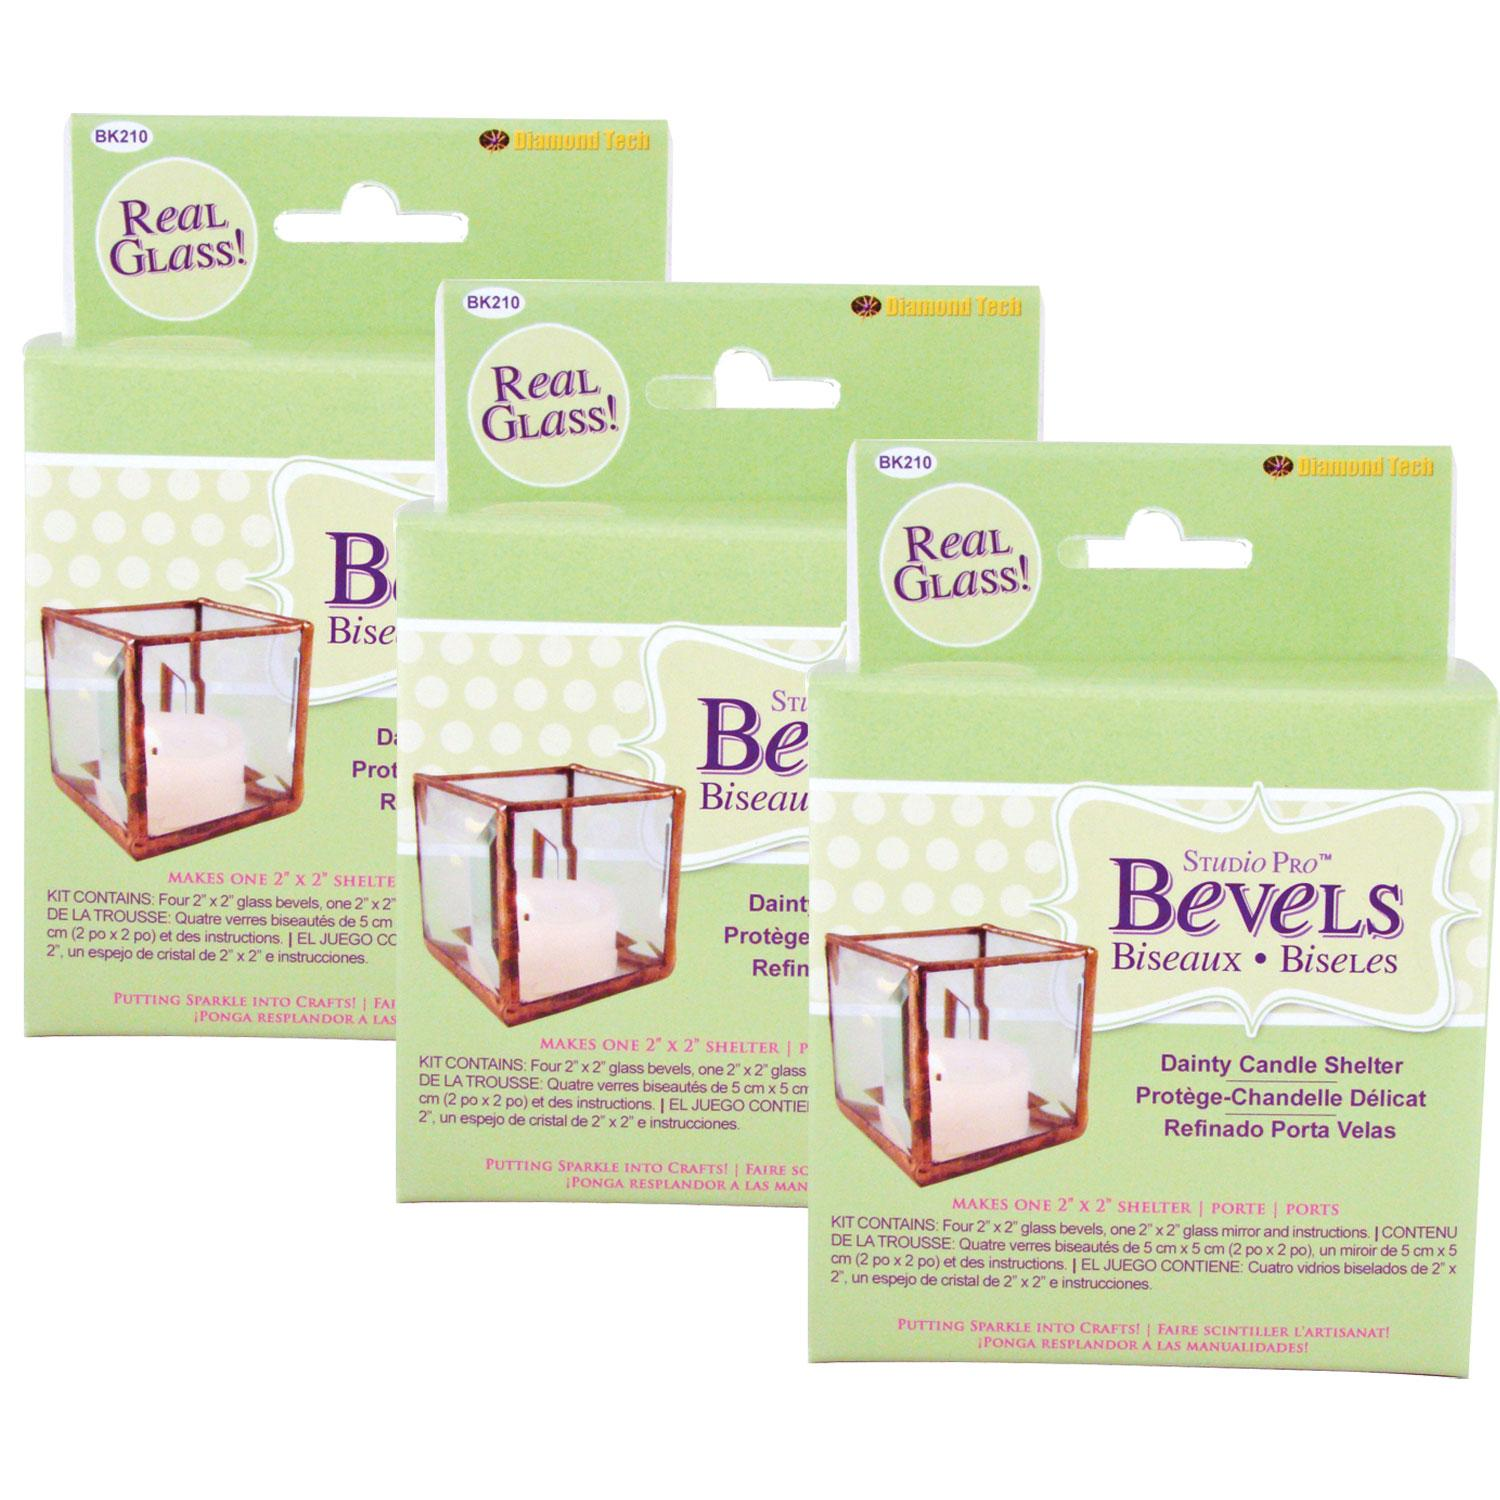 Small Candle Shelter Bevel Kit - 3 Pack